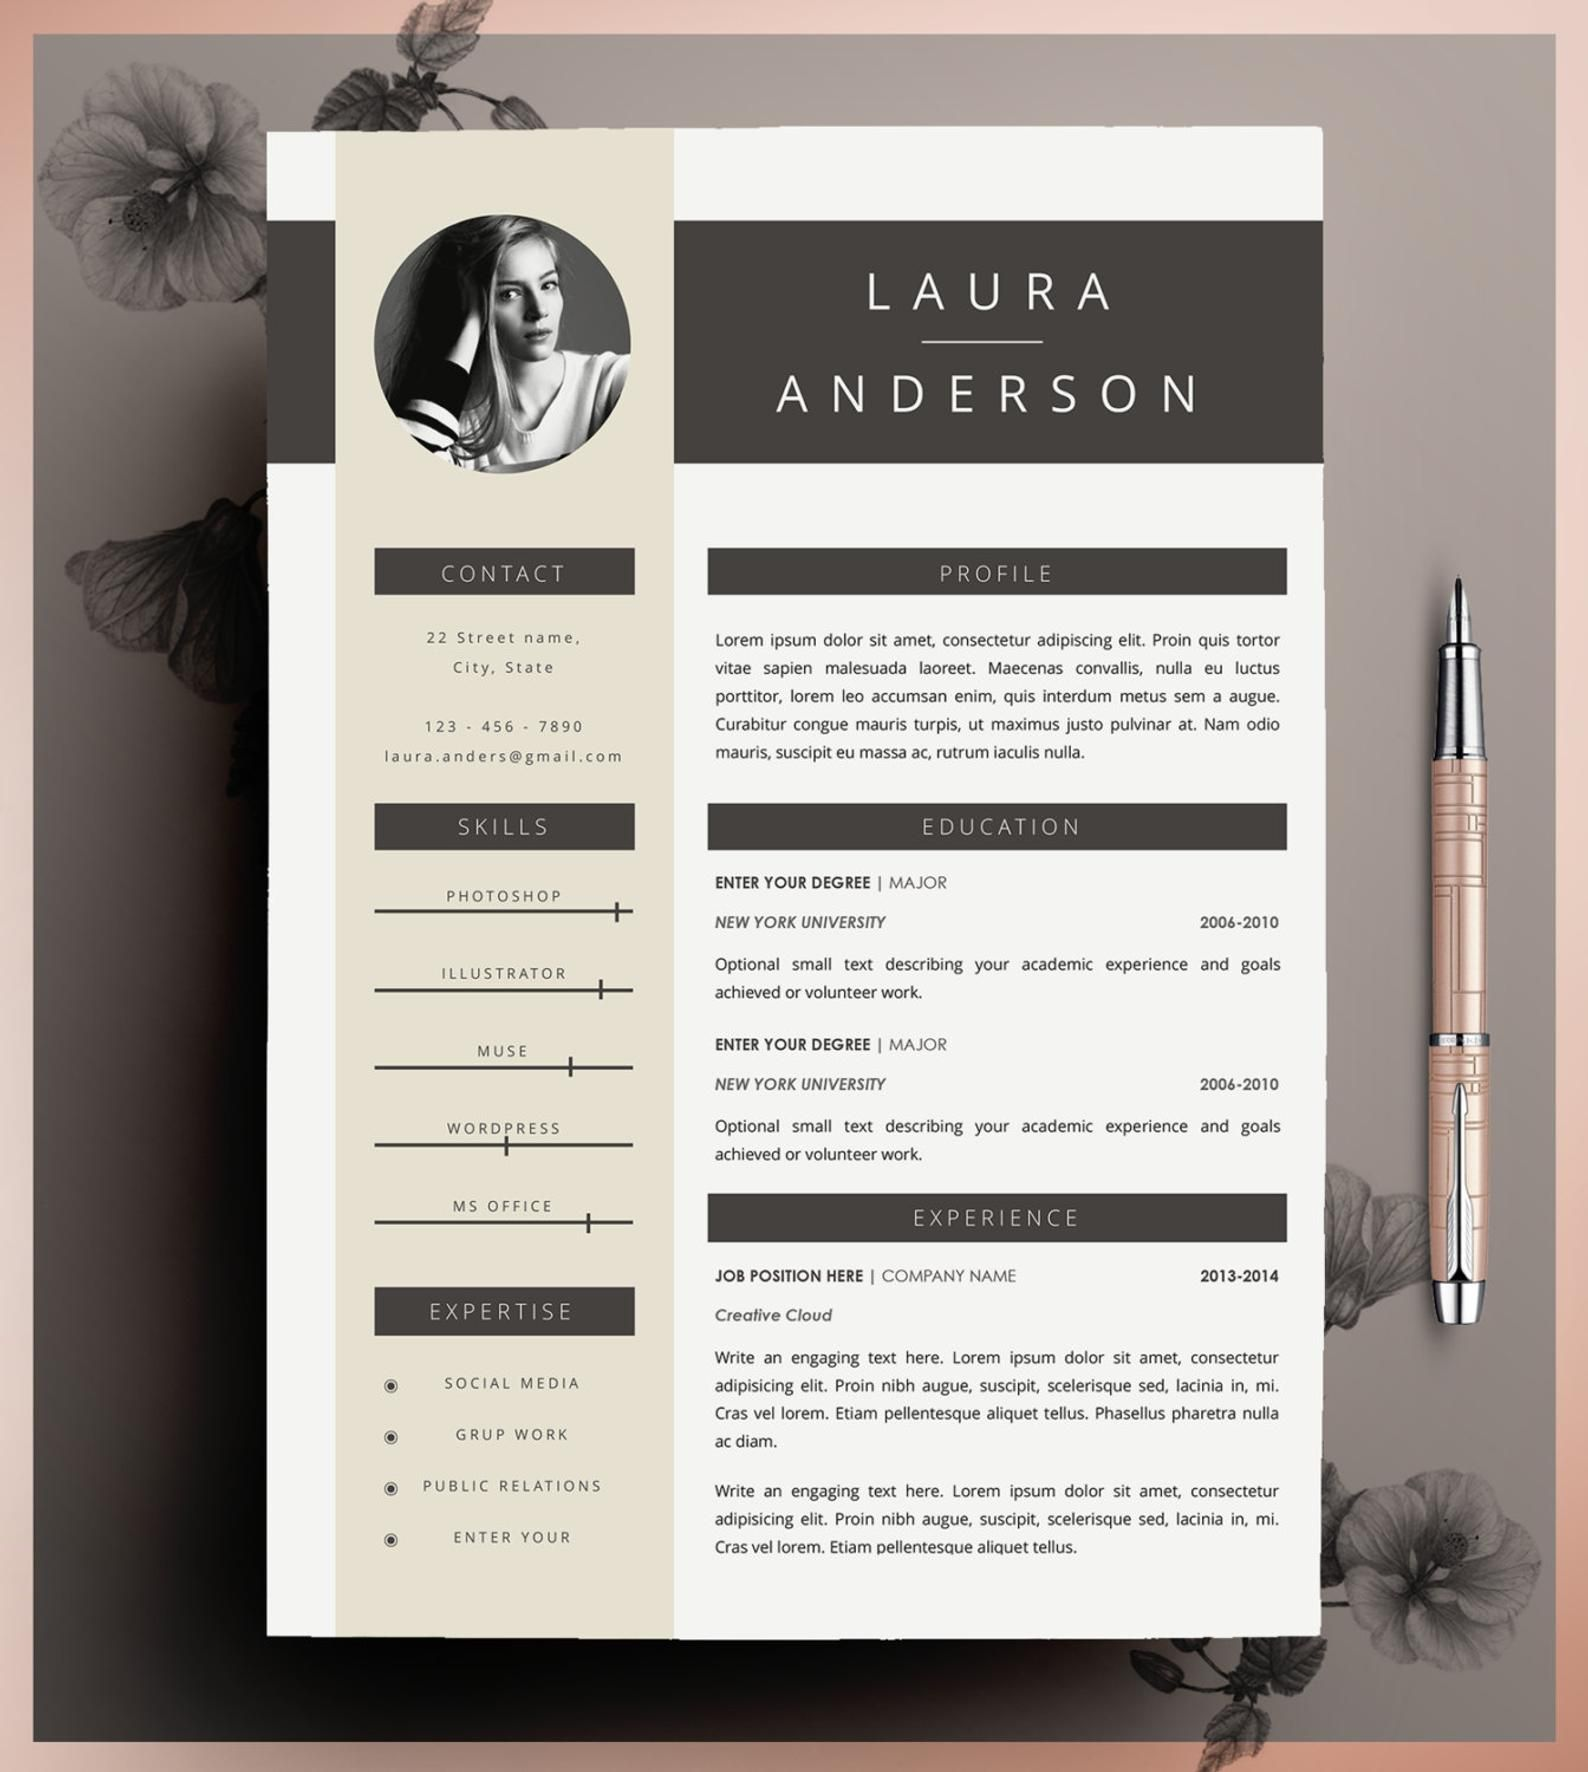 Creative Resume Template Cv Template Instant Download Editable In Ms Word And Pages Cover Letter Size A4 And Us Letter Creative Resume Templates Creative Resume Cv Template